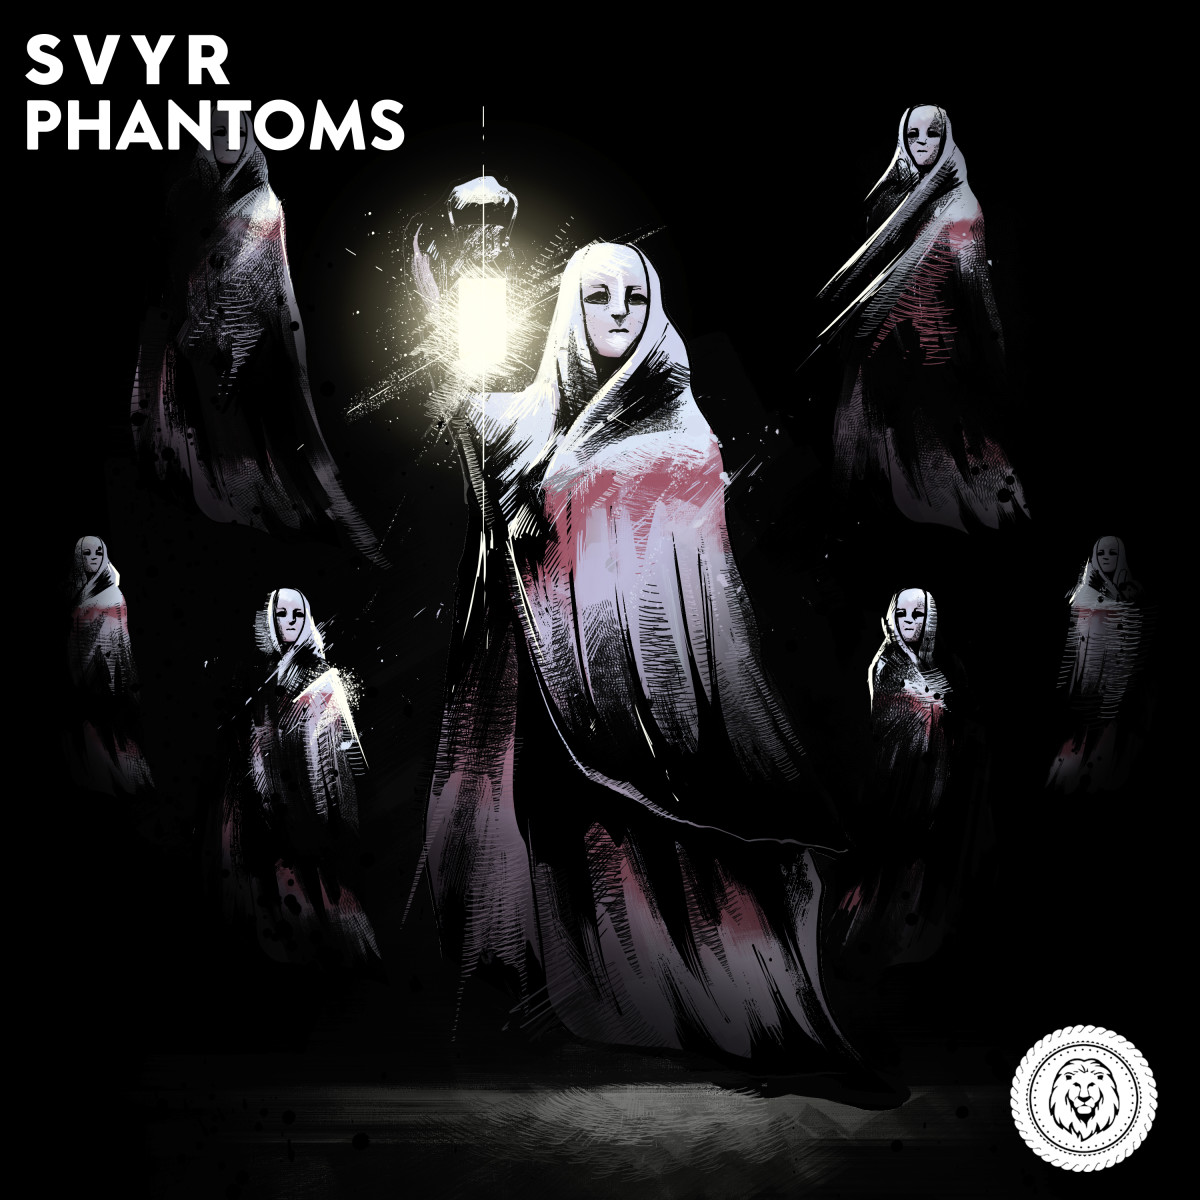 SVYR - Phantoms EP + Mob City Single, Colorado Producer